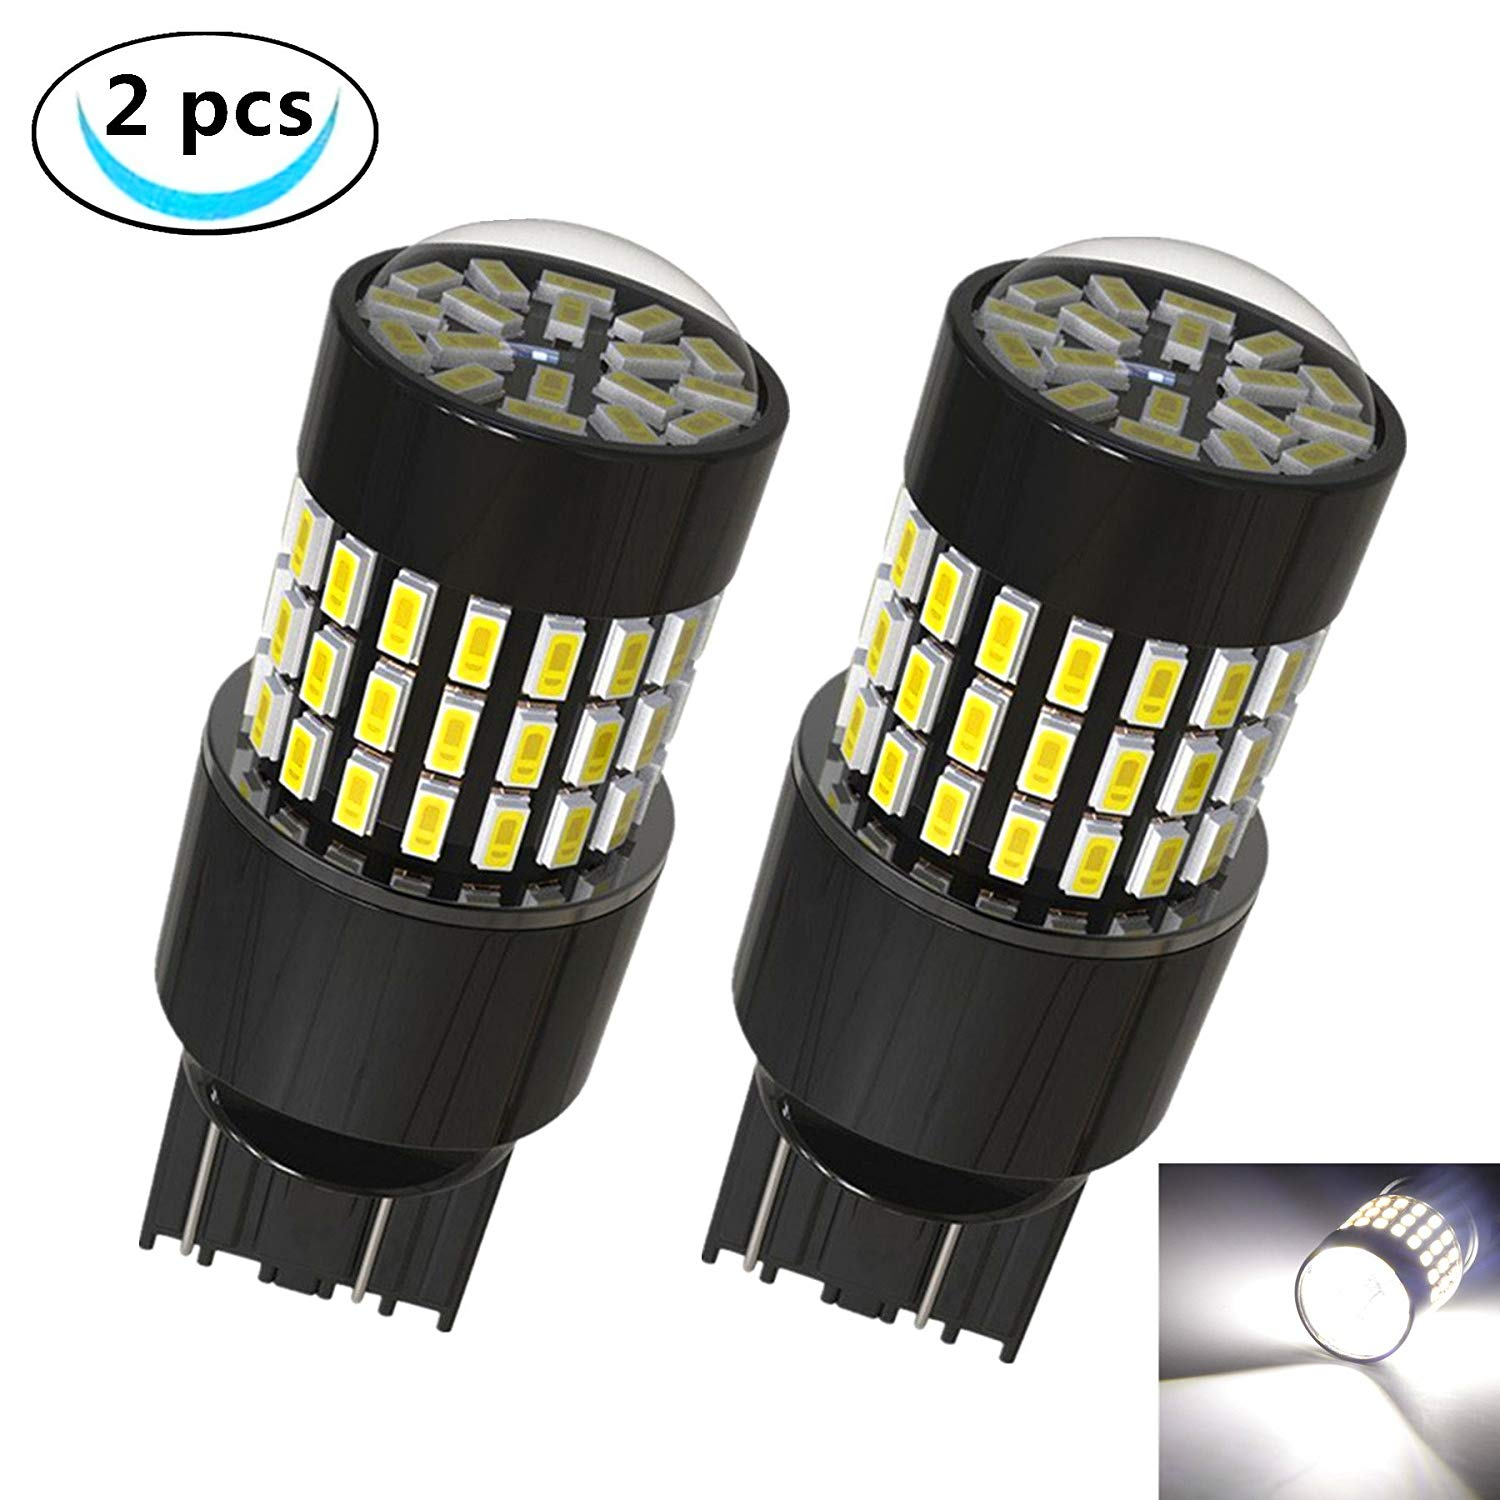 LABBYWAY 2 Pcs Super Bright Low Power 3014 78-EX Chipsets 7440 7443 992 T20 LED Used For Back Up Reverse Lights or Tail Brake Lights,Xenon White